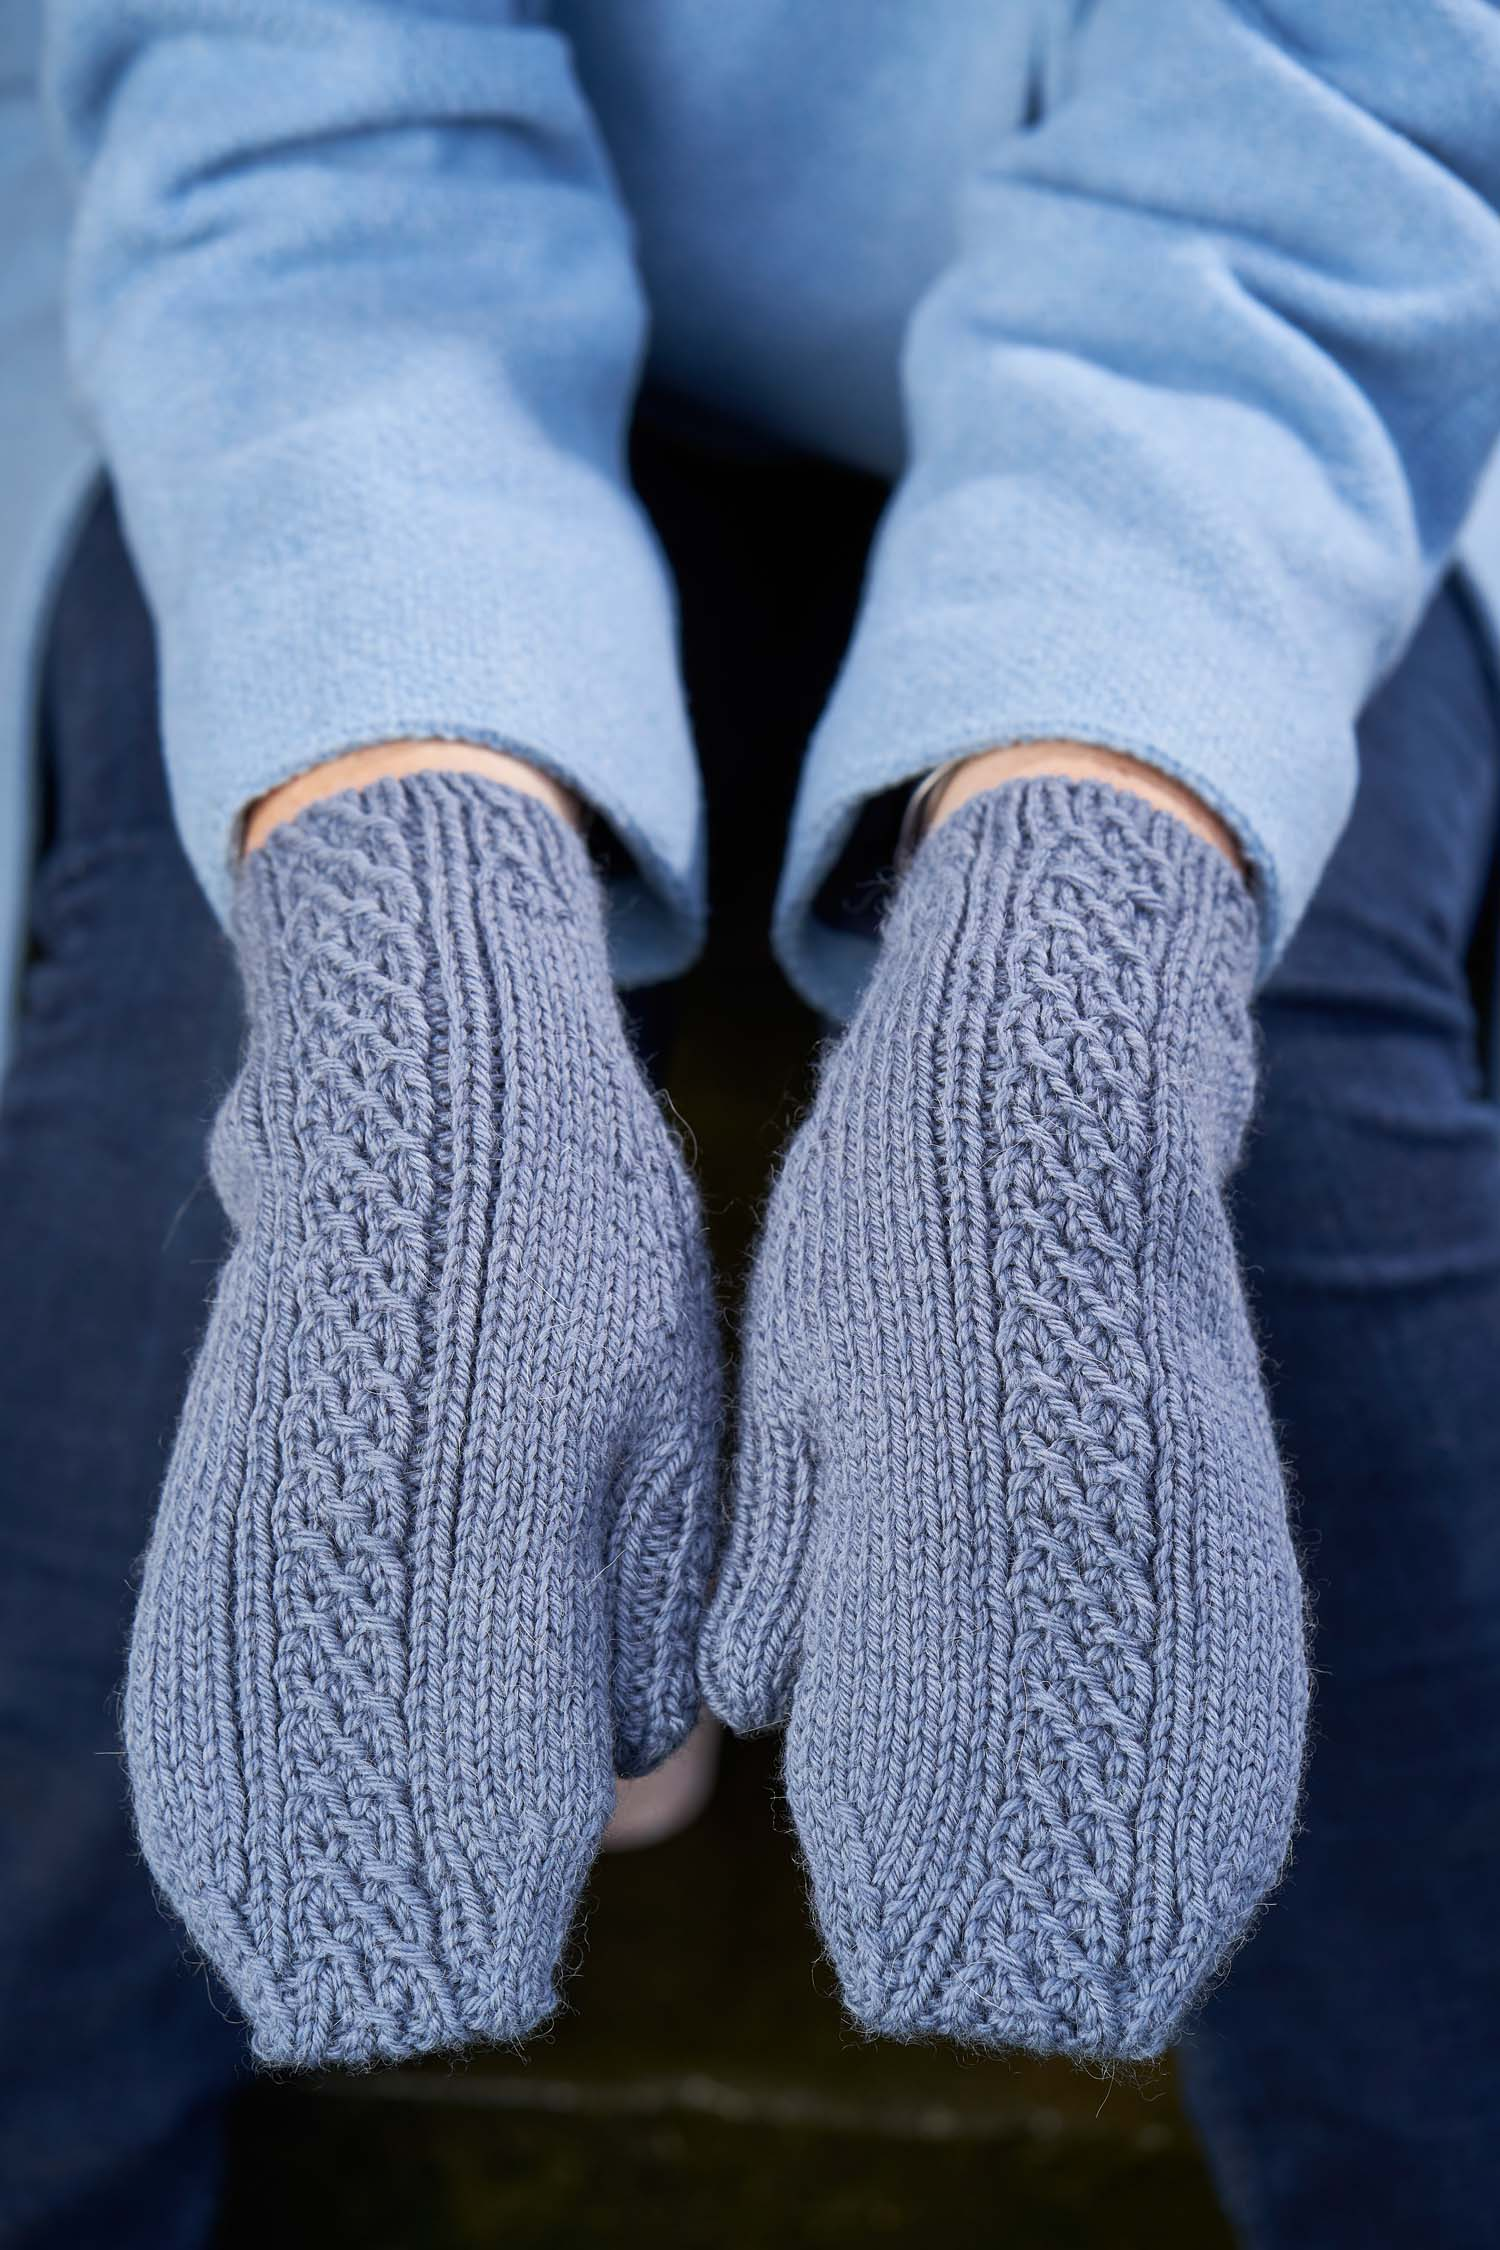 The Totally Tubular Mittens by Sarah Hatton. Image © Jesse Wild.